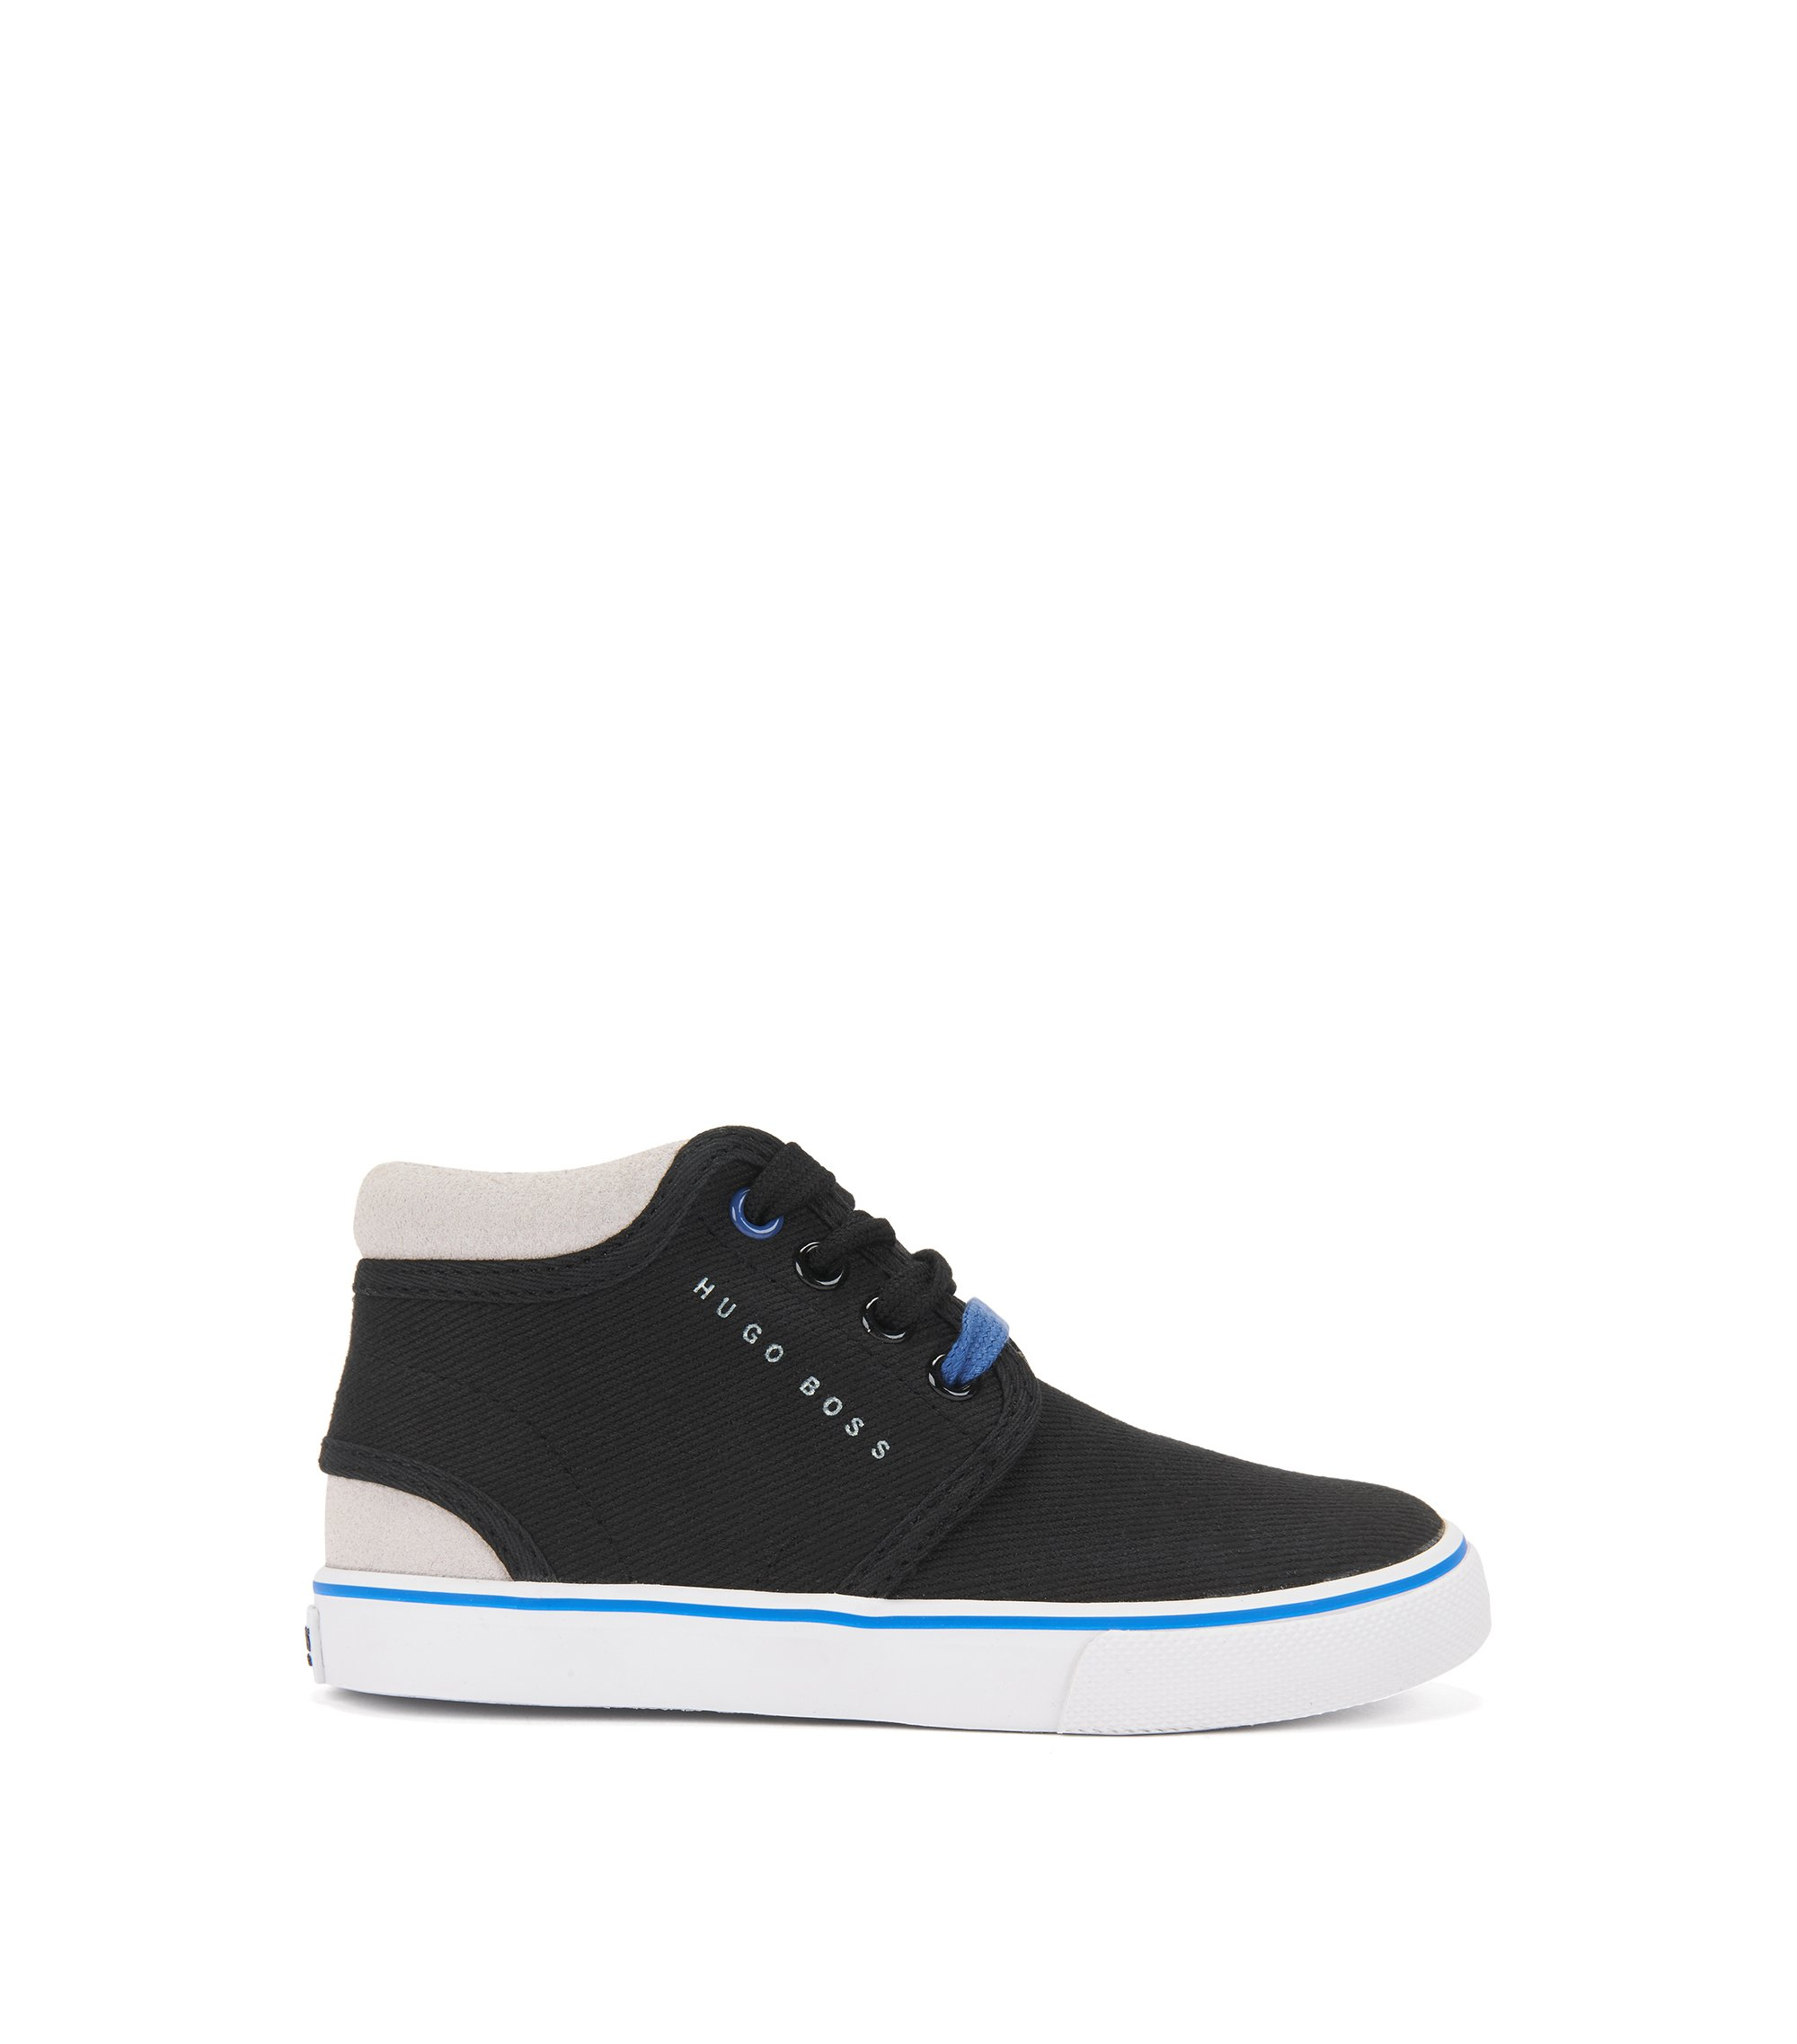 Kids' high-top trainers with cotton uppers, Black